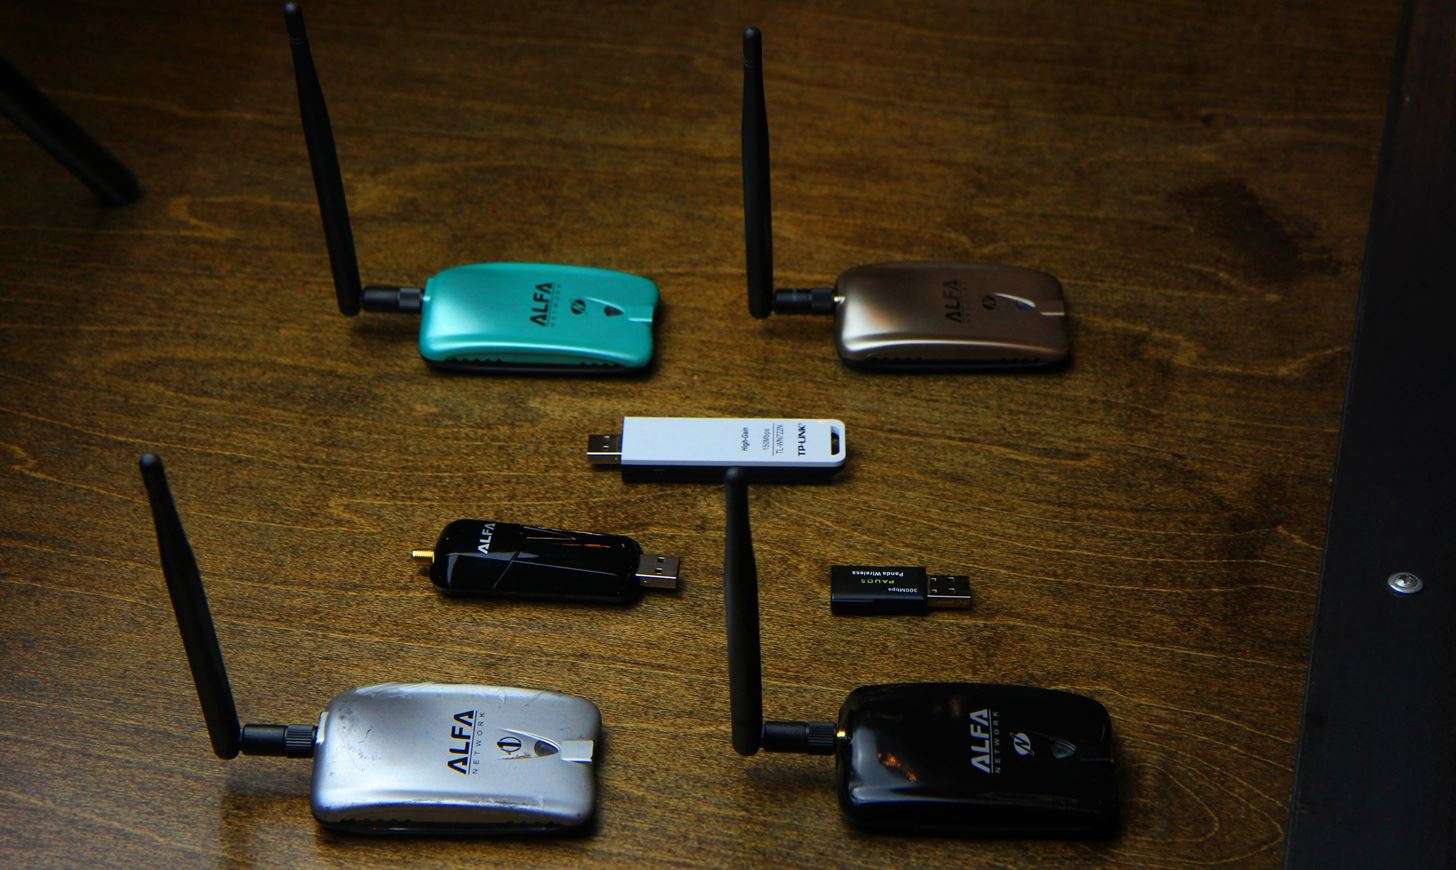 How to Hack WPA WiFi Passwords by Cracking the WPS PIN « Null Byte